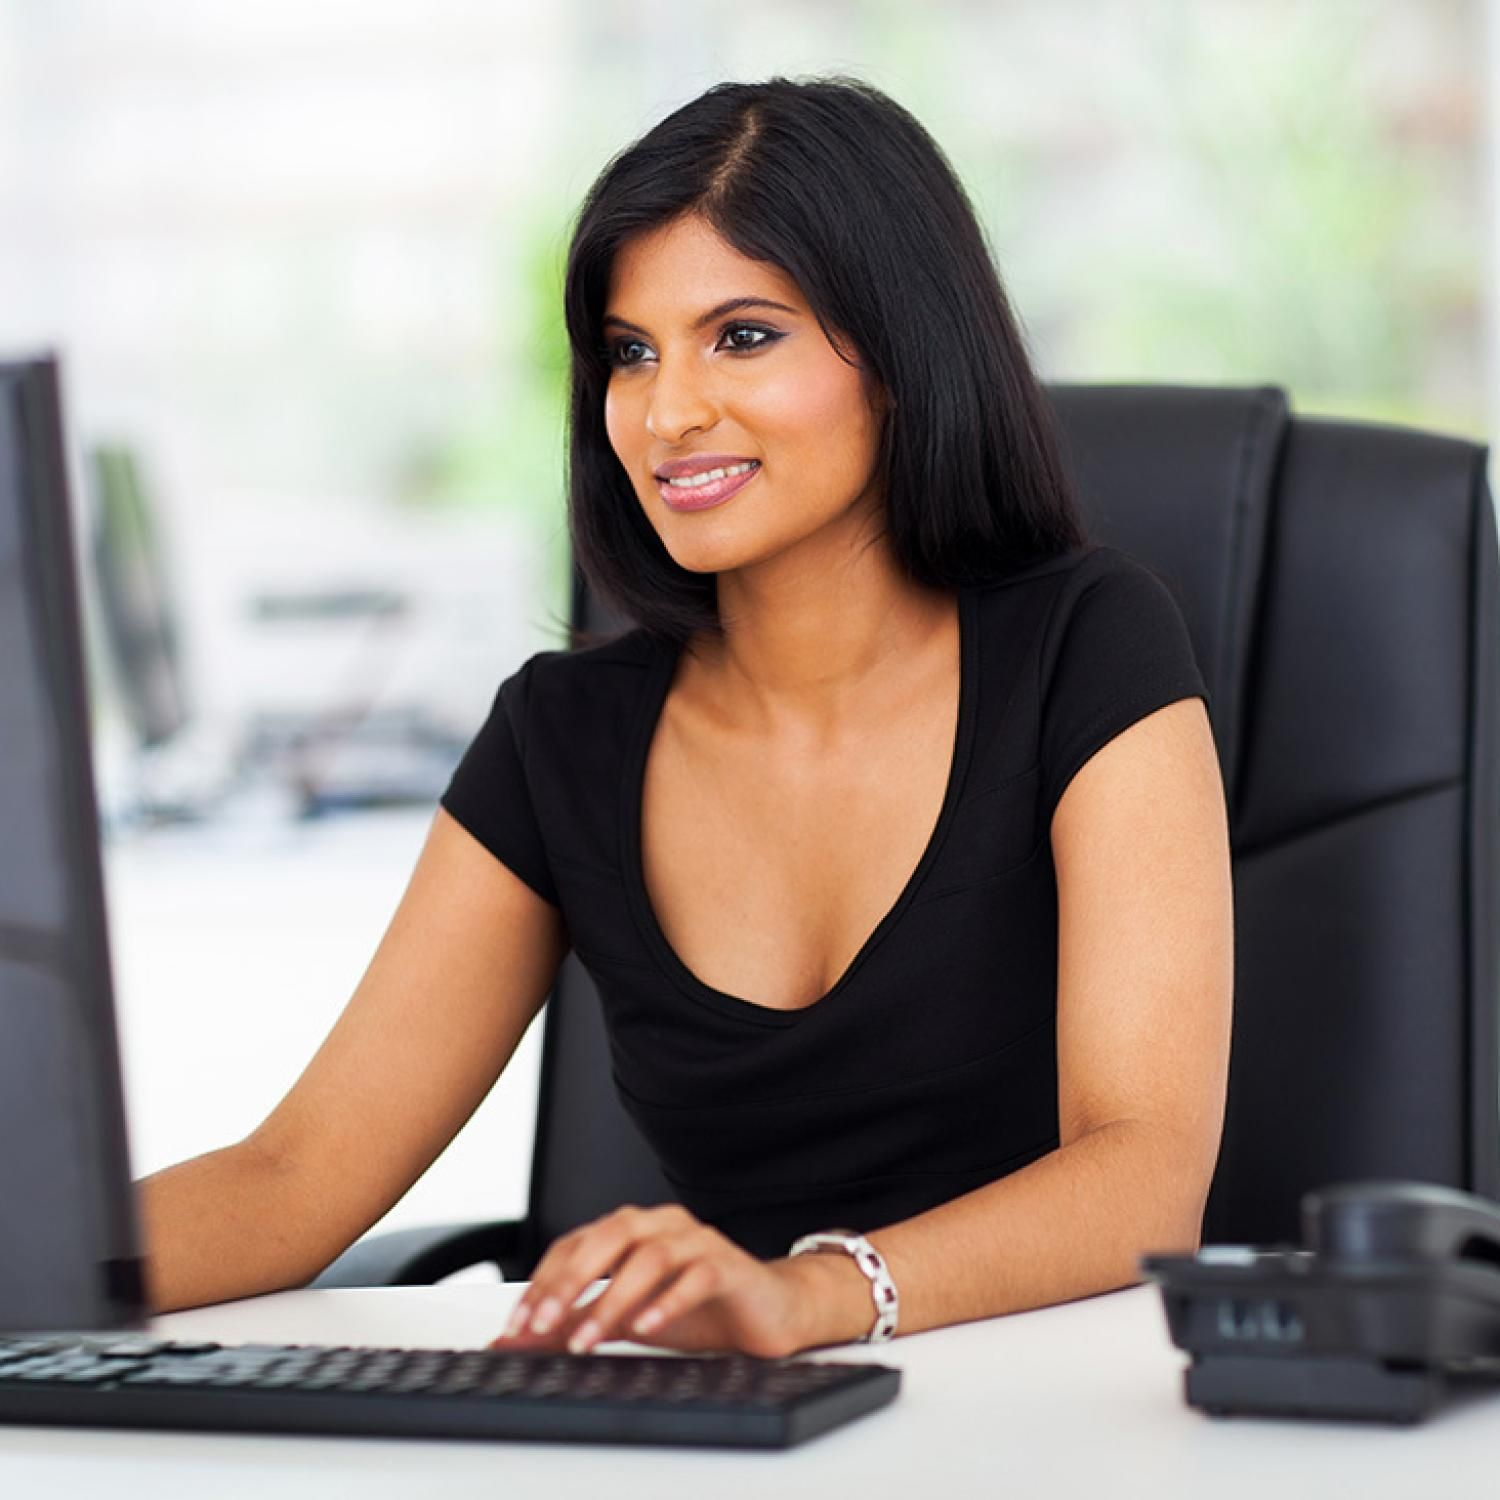 Experts Share Tips For Stay At Home Moms Returning To Work Short Term Loans Loans For Bad Credit Loan